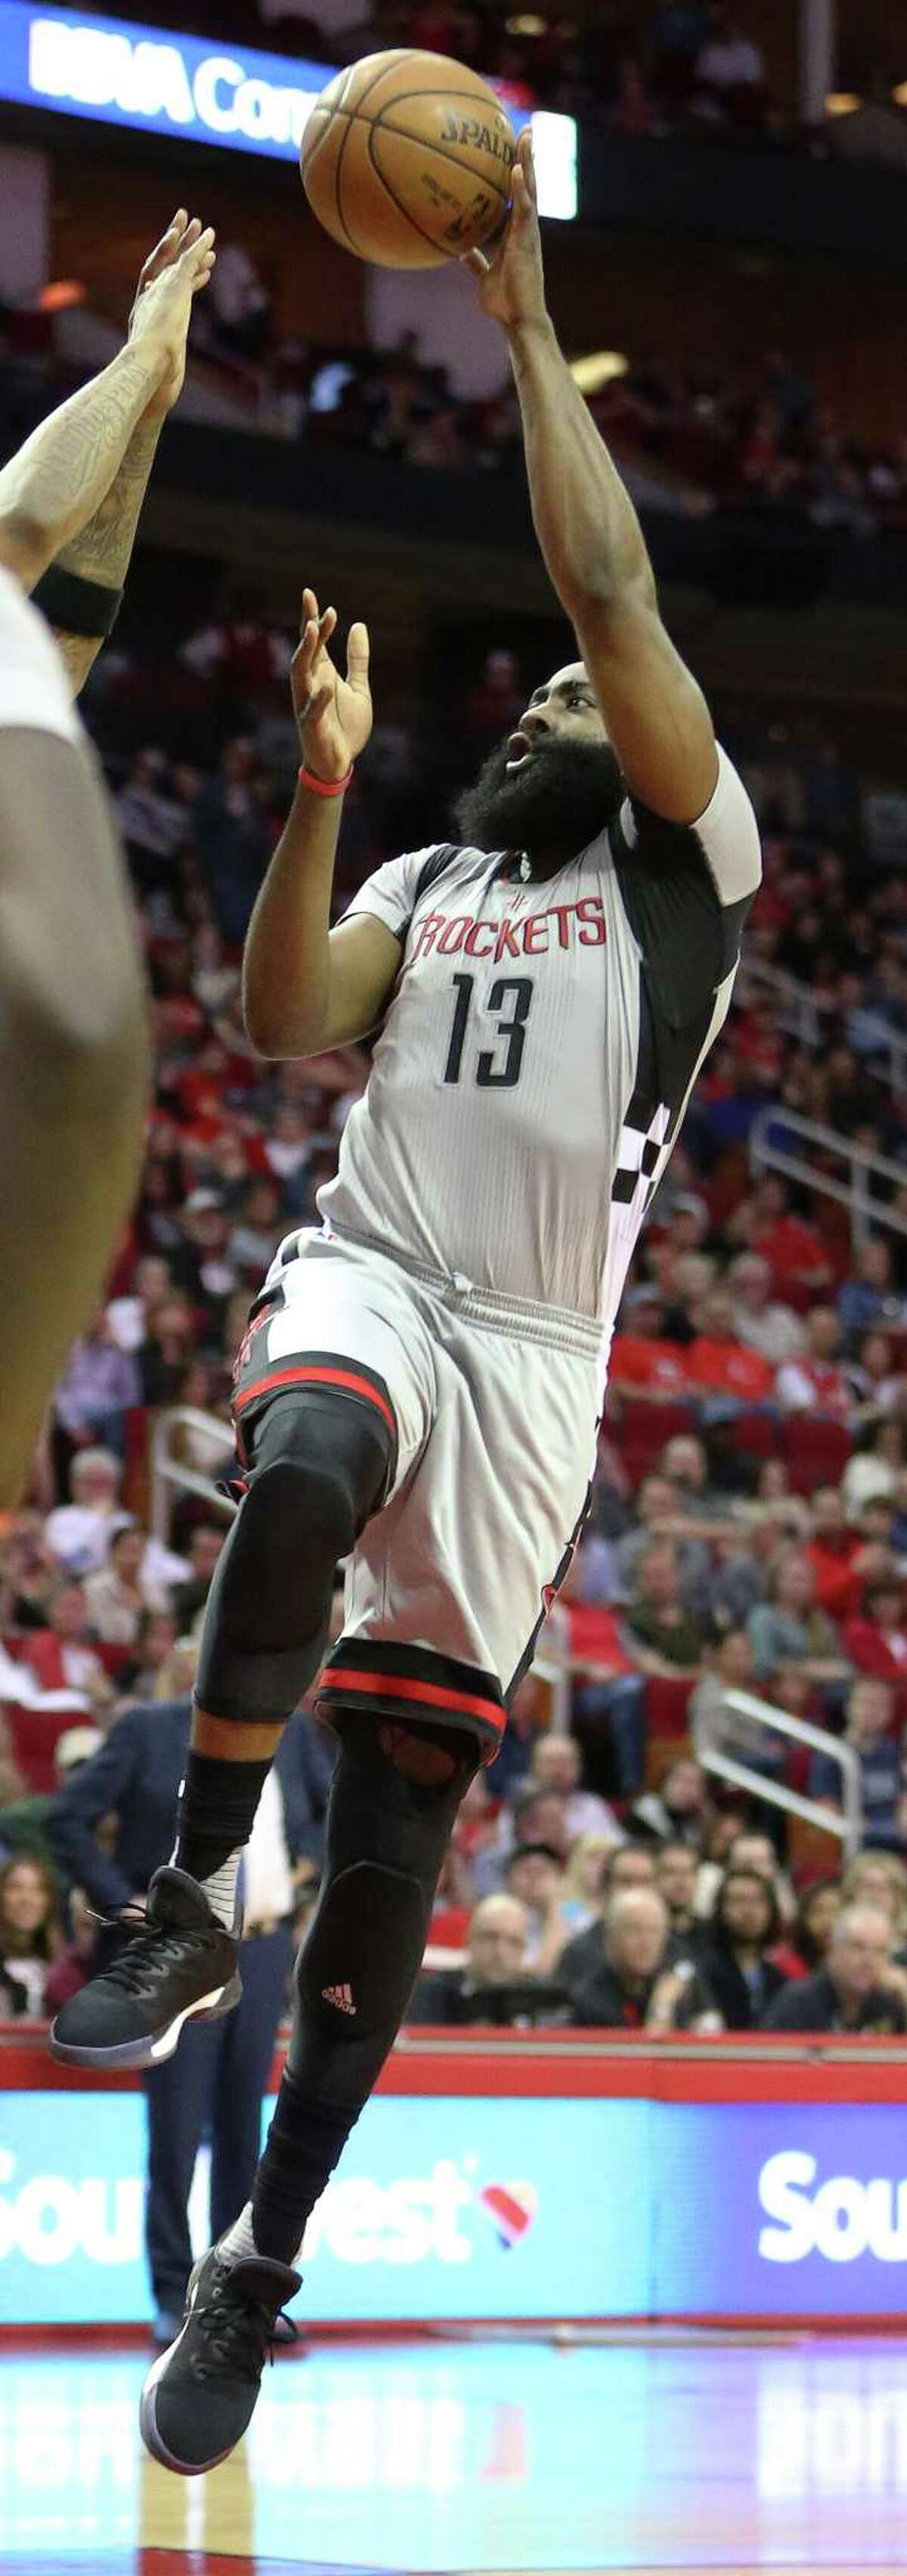 Houston Rockets guard James Harden (13) aims for the basket during the second quarter of the game at Toyota Center Saturday, Feb. 25, 2017, in Houston.